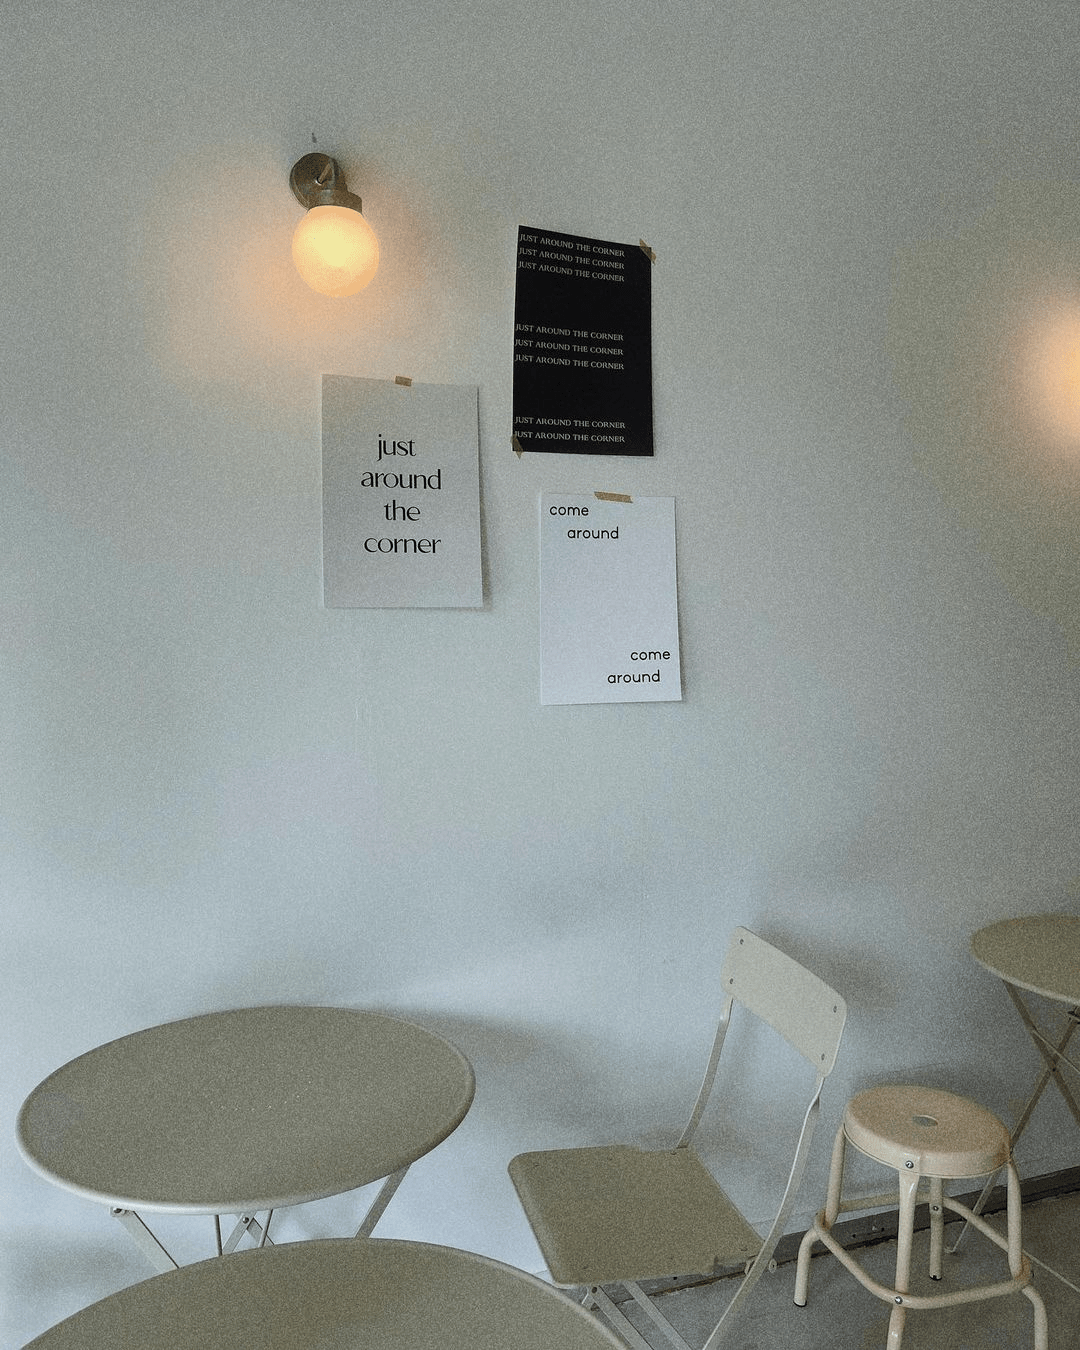 New Cafes And Restaurants June 2021 - Around